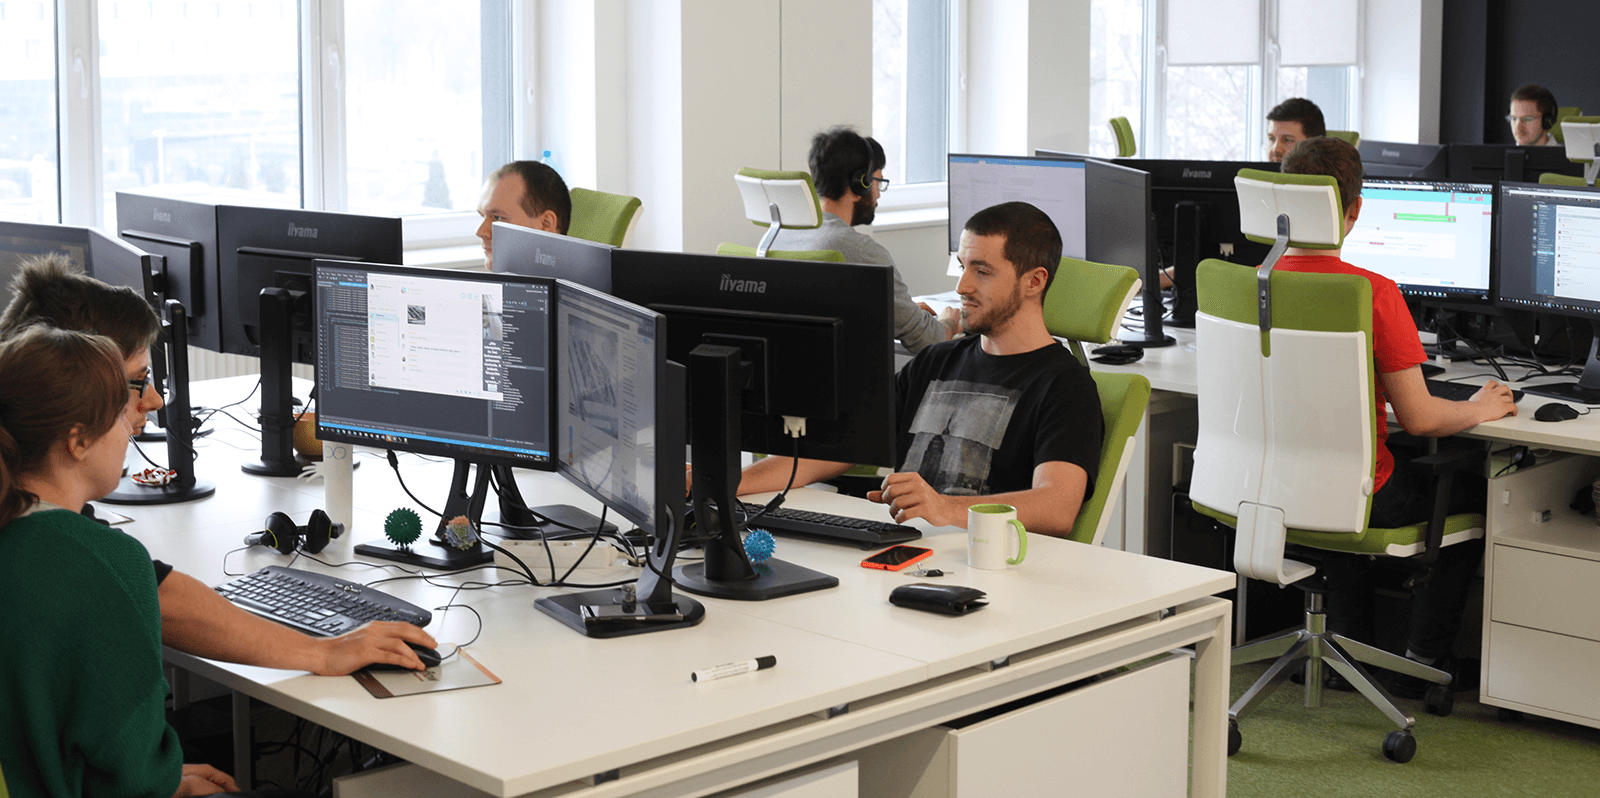 confirmed by the Cushman & Wakefield forecasts from the turn of the year which predict a growth of the services outsourcing sector at a rate of 6 percent per annum over the next six years. IT outsourcing across the Baltic Sea